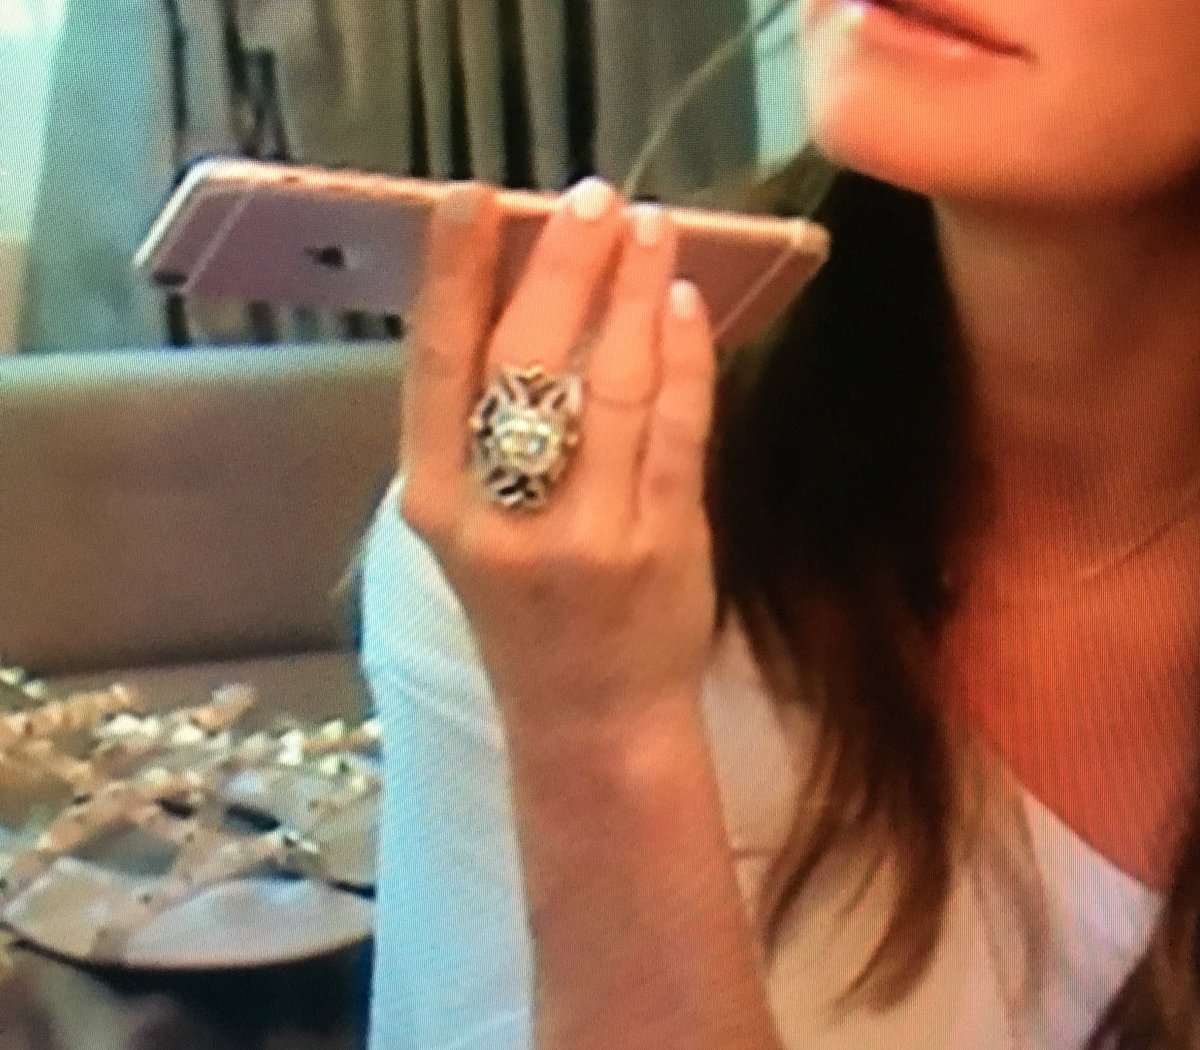 Kyle Richards On Twitter The Diamond In Center Was My Mom S Wedding Ring Missrodkin Designed It For Me